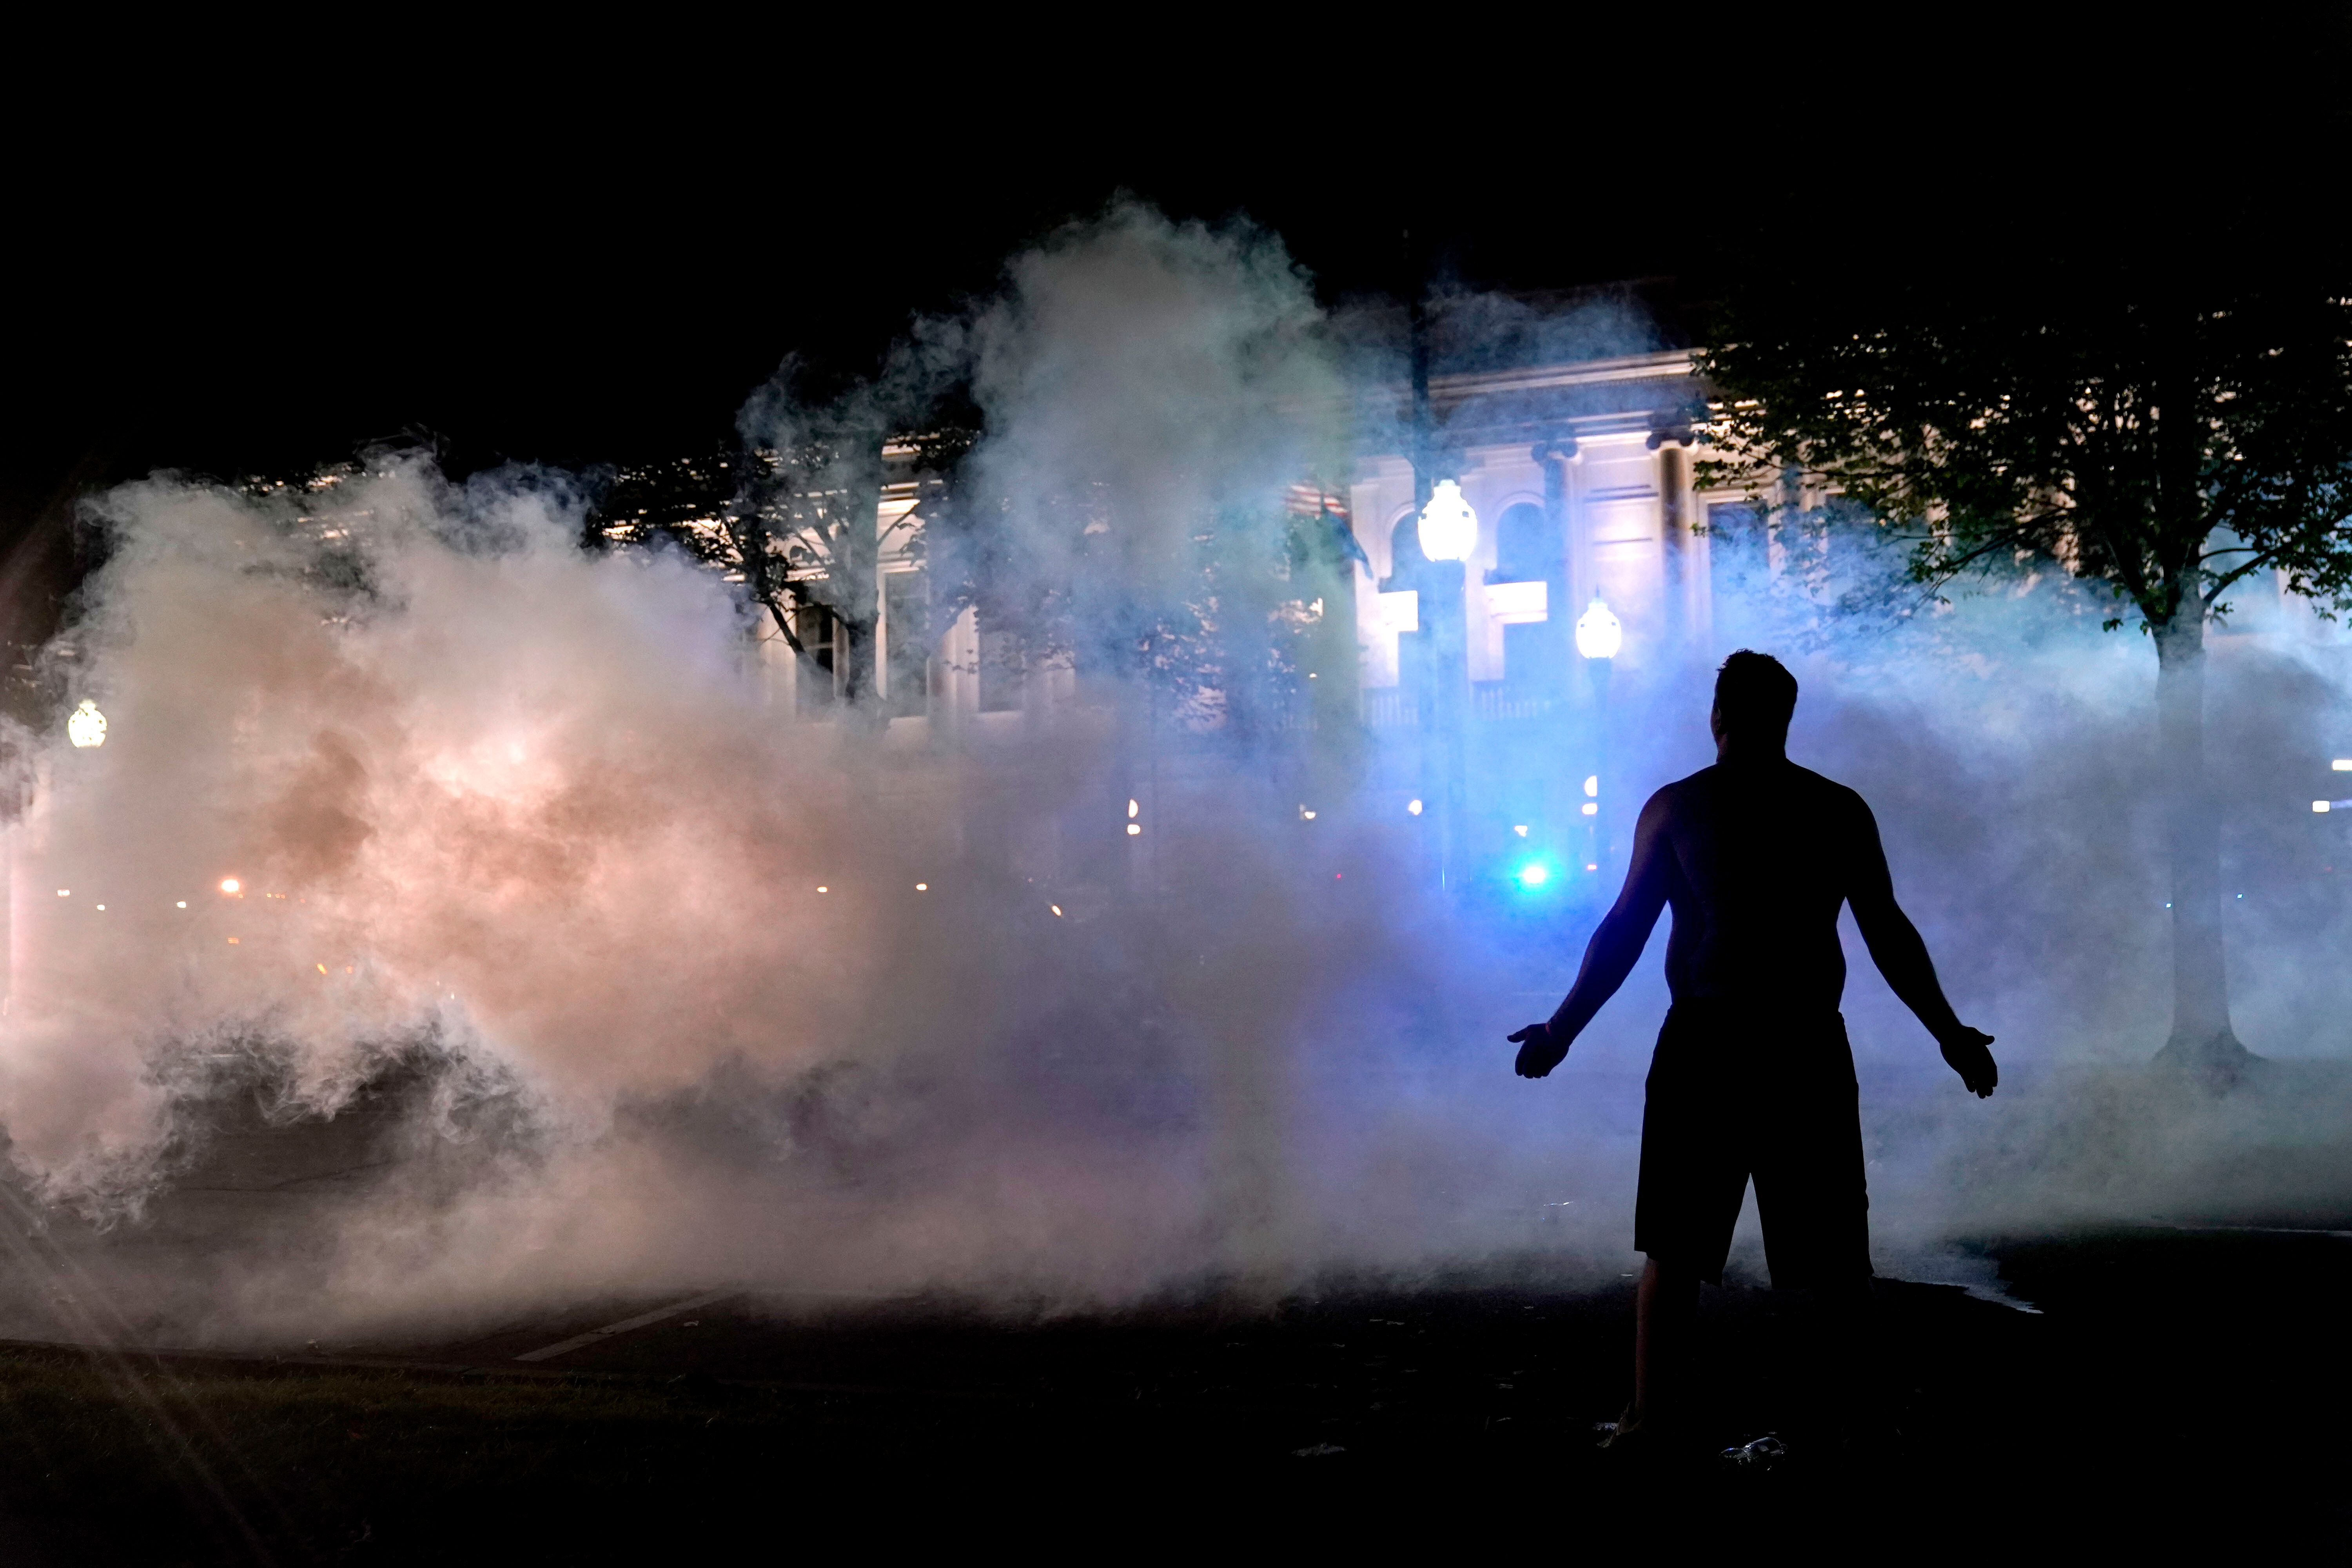 A protester attempts to continue standing through a cloud of tear gas fired by police outside the Kenosha County Courthouse,